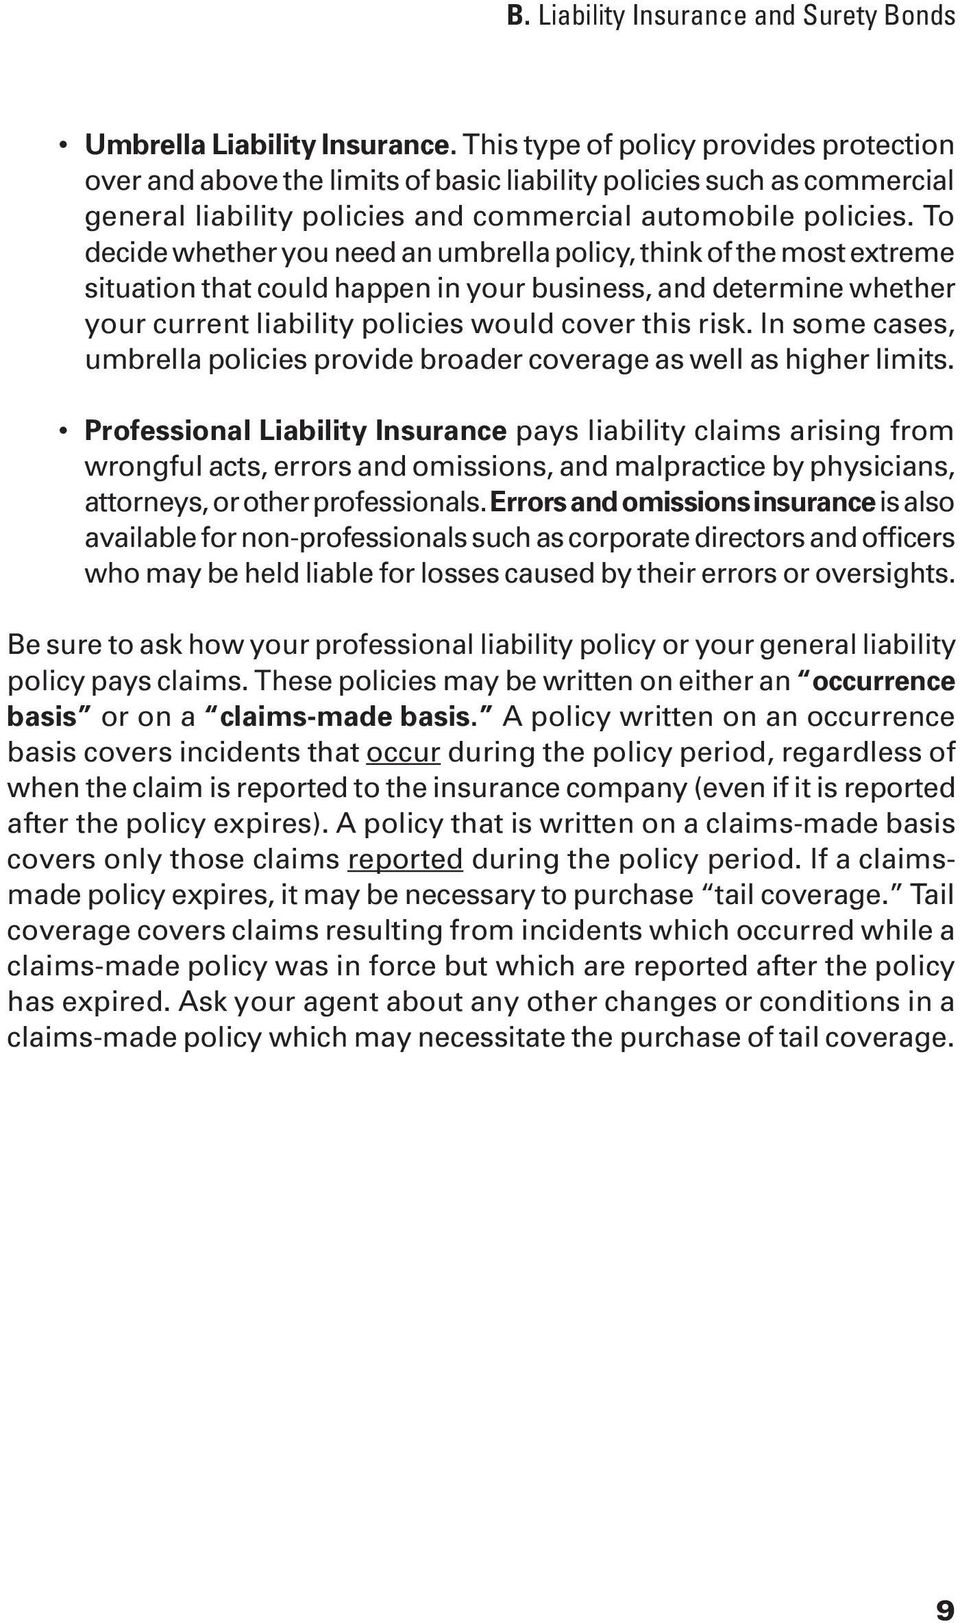 To decide whether you need an umbrella policy, think of the most extreme situation that could happen in your business, and determine whether your current liability policies would cover this risk.